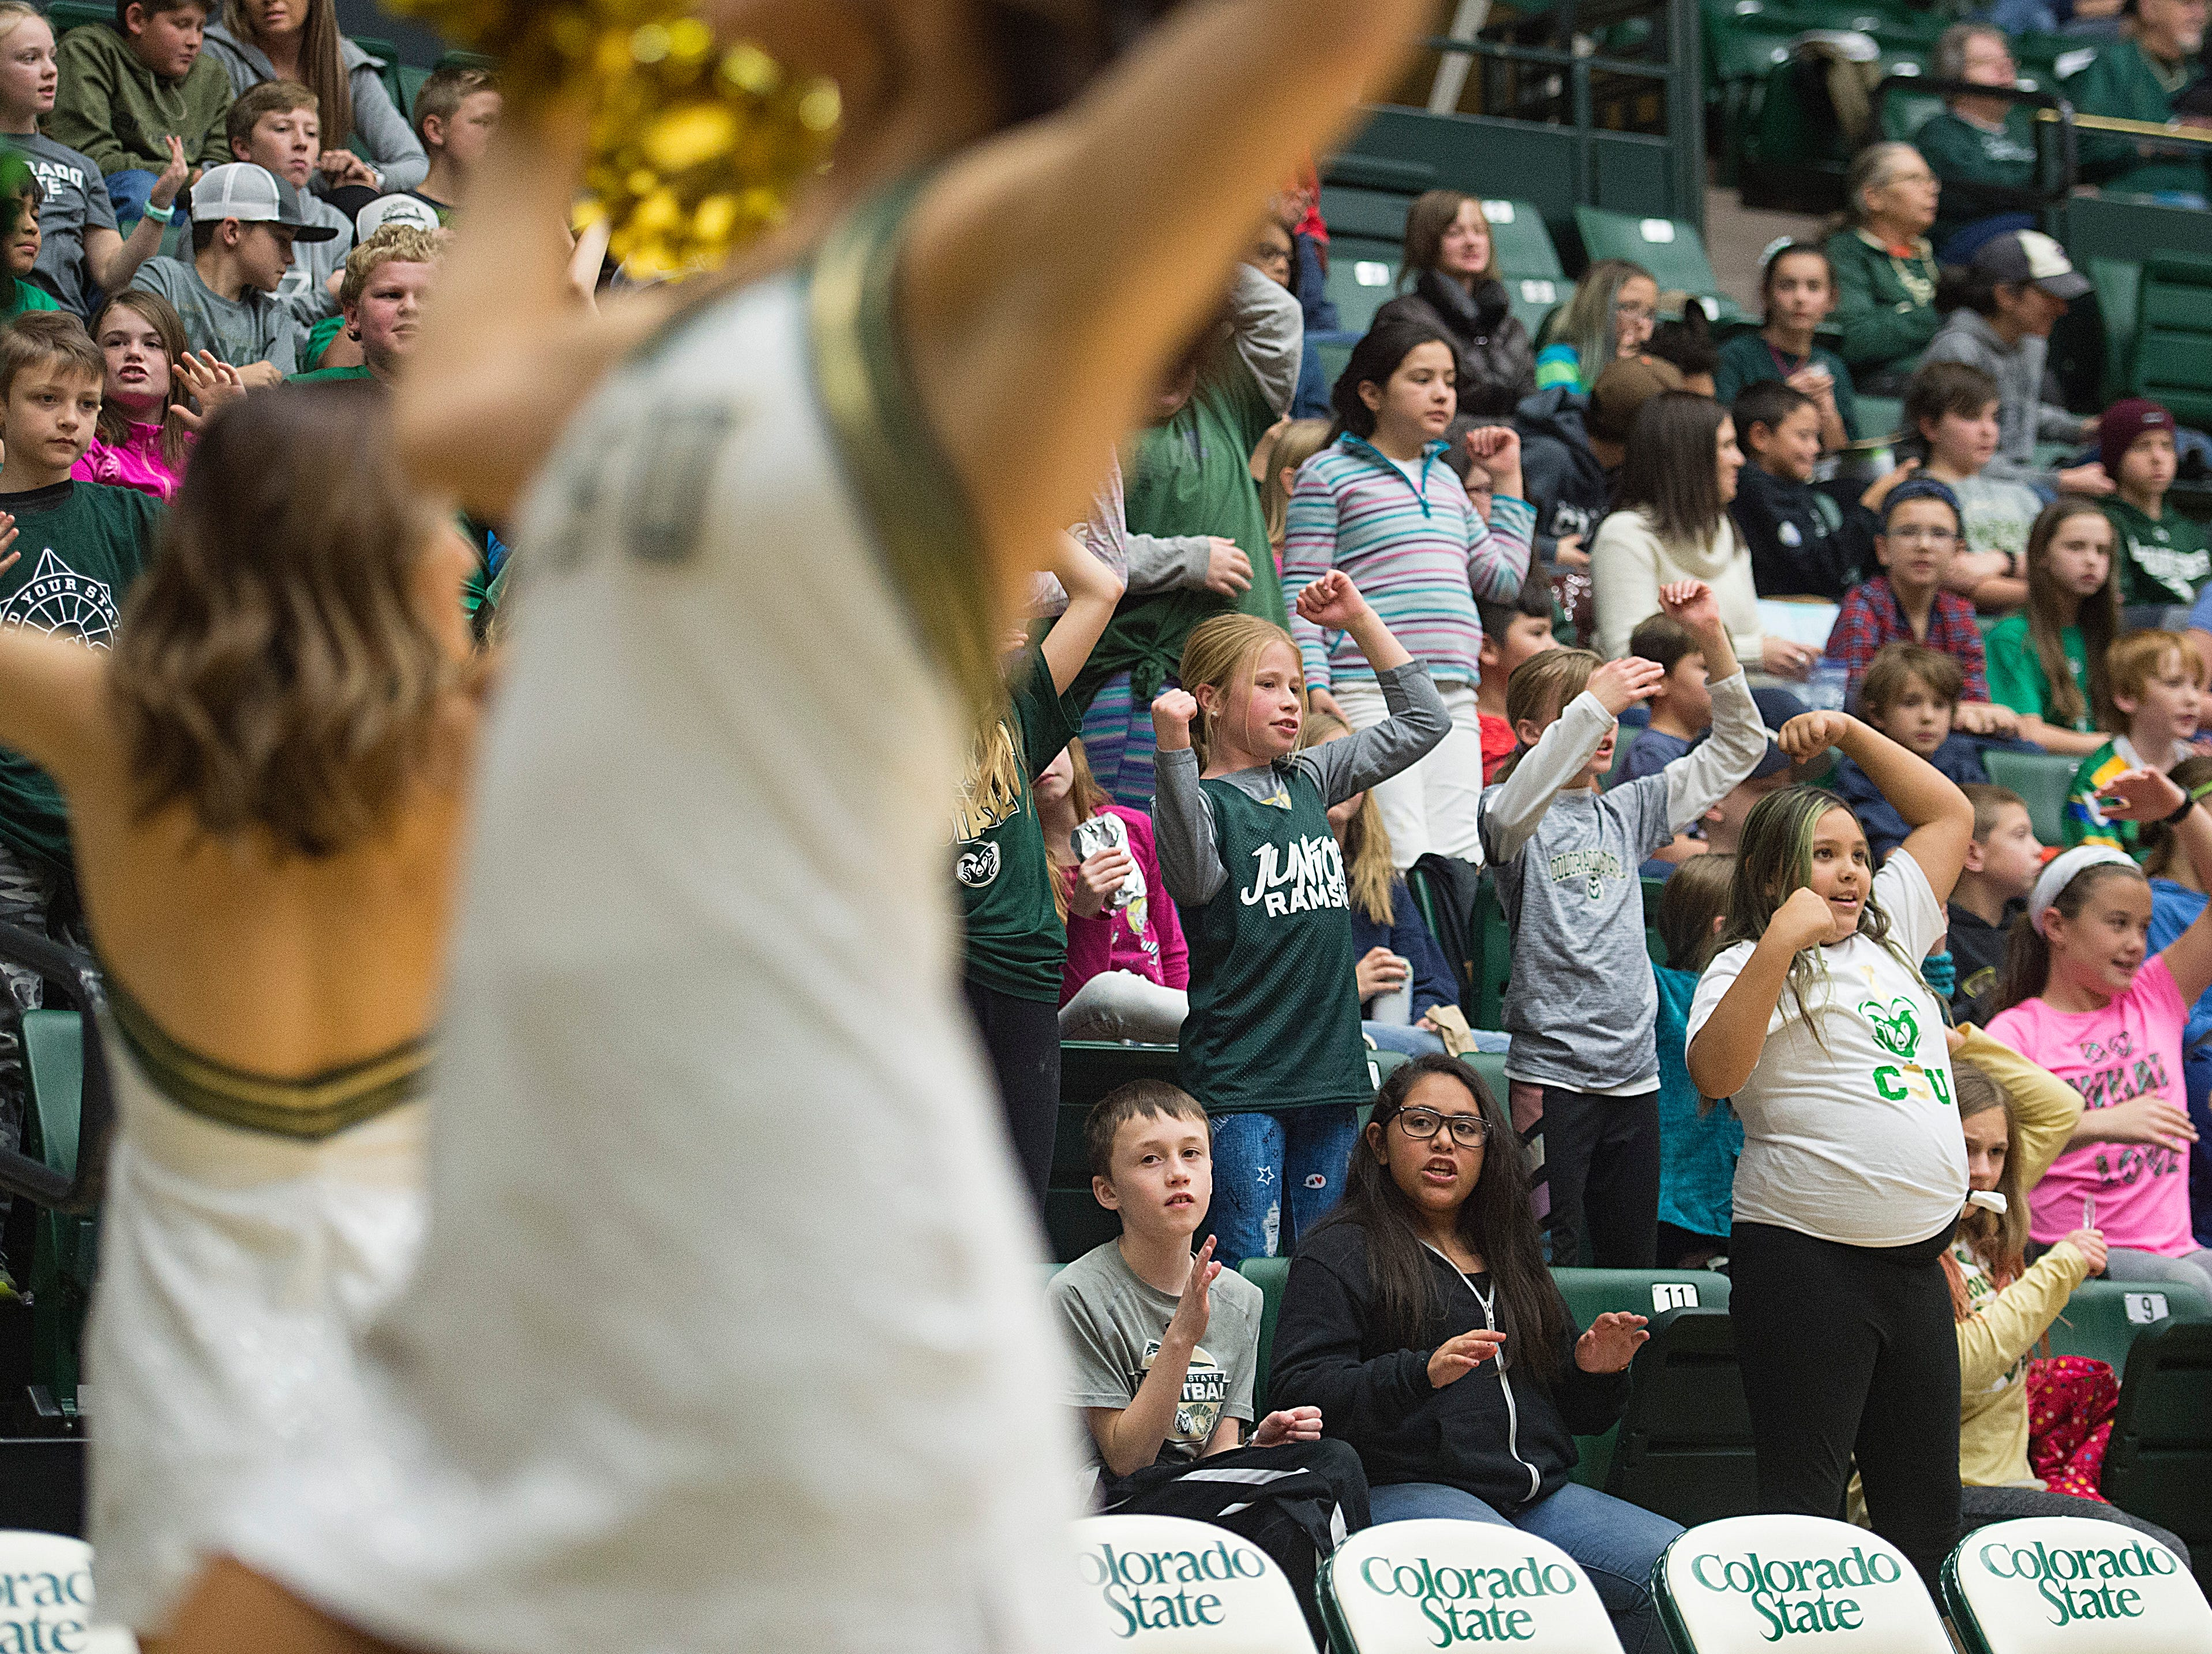 Elementary school students follow along with CSU cheerleaders during a women's basketball game against Northern Arizona at Moby Arena on Wednesday, December 5, 2018.